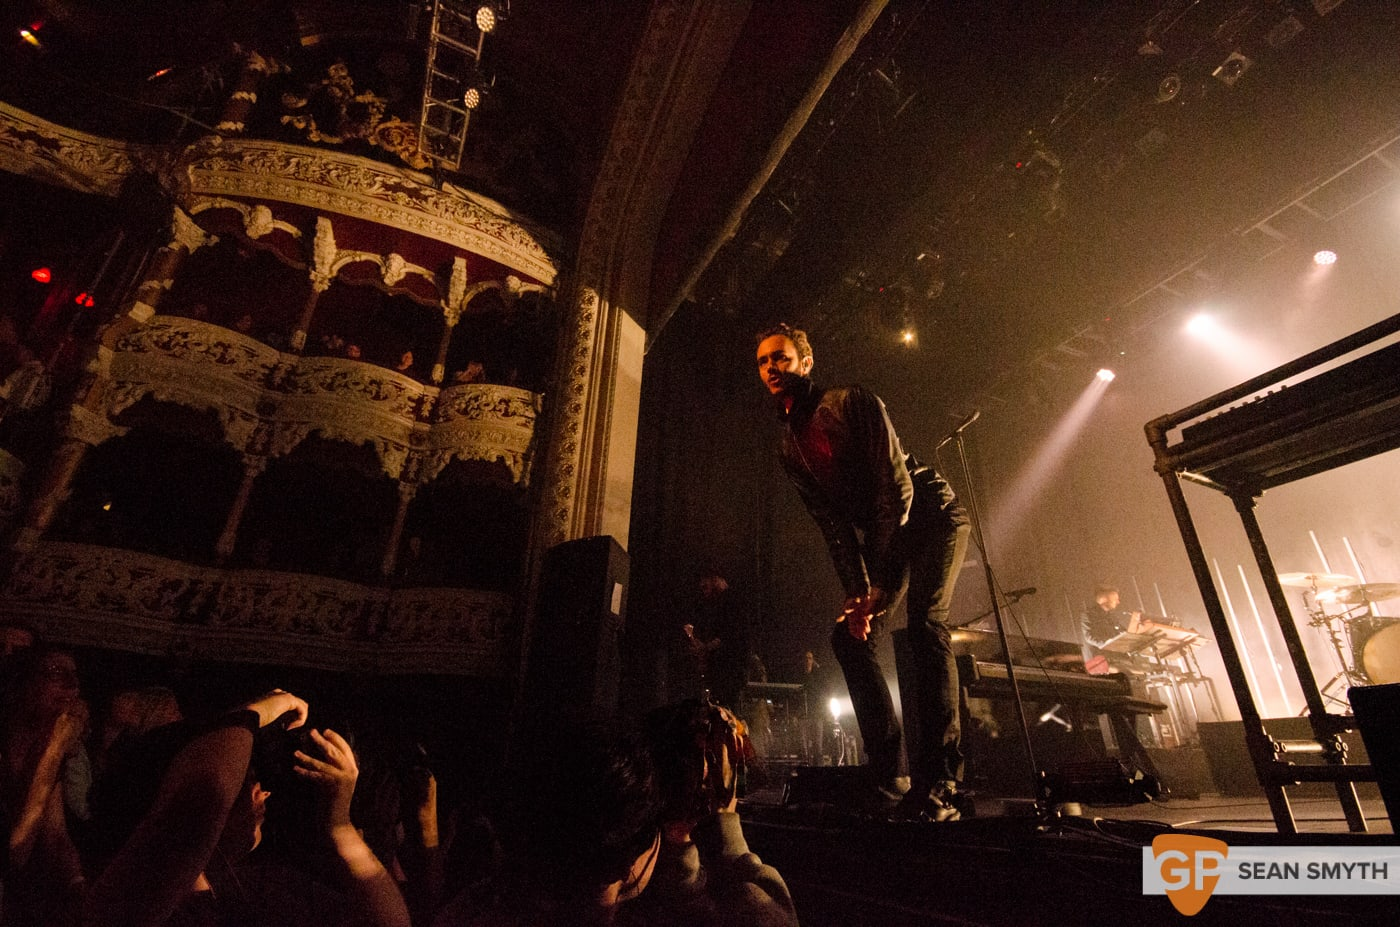 editors-at-the-olympia-theatre-by-sean-smyth-10-10-15-6-of-28_21467589934_o